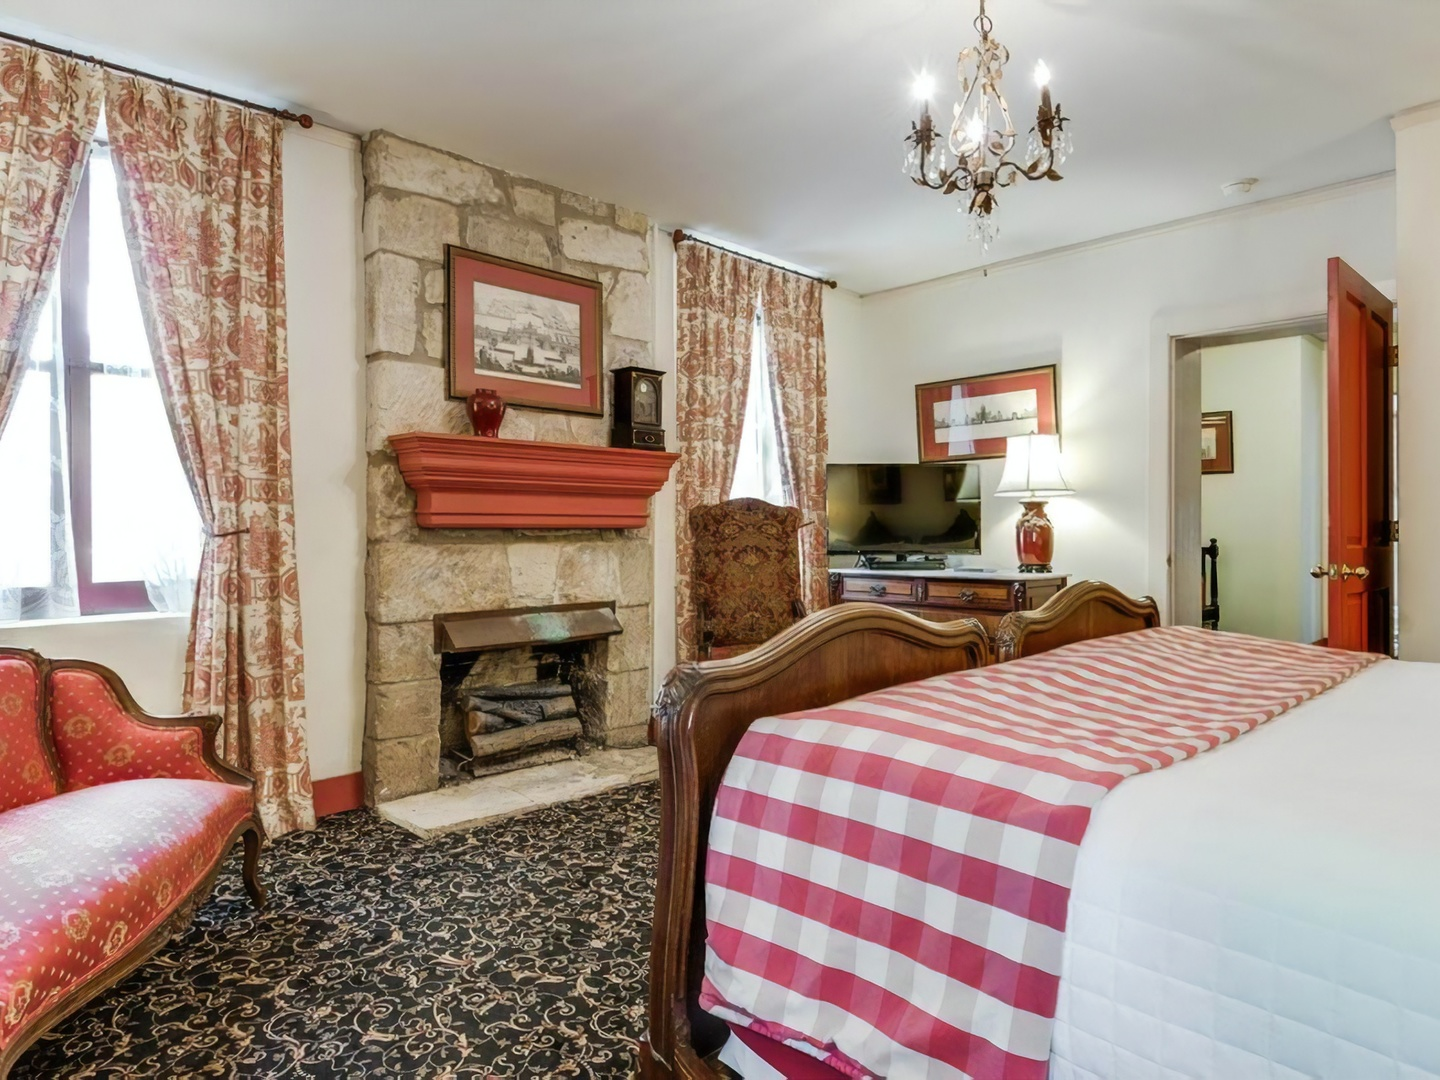 A bedroom with a large red chair in the living room at Noble Inns.